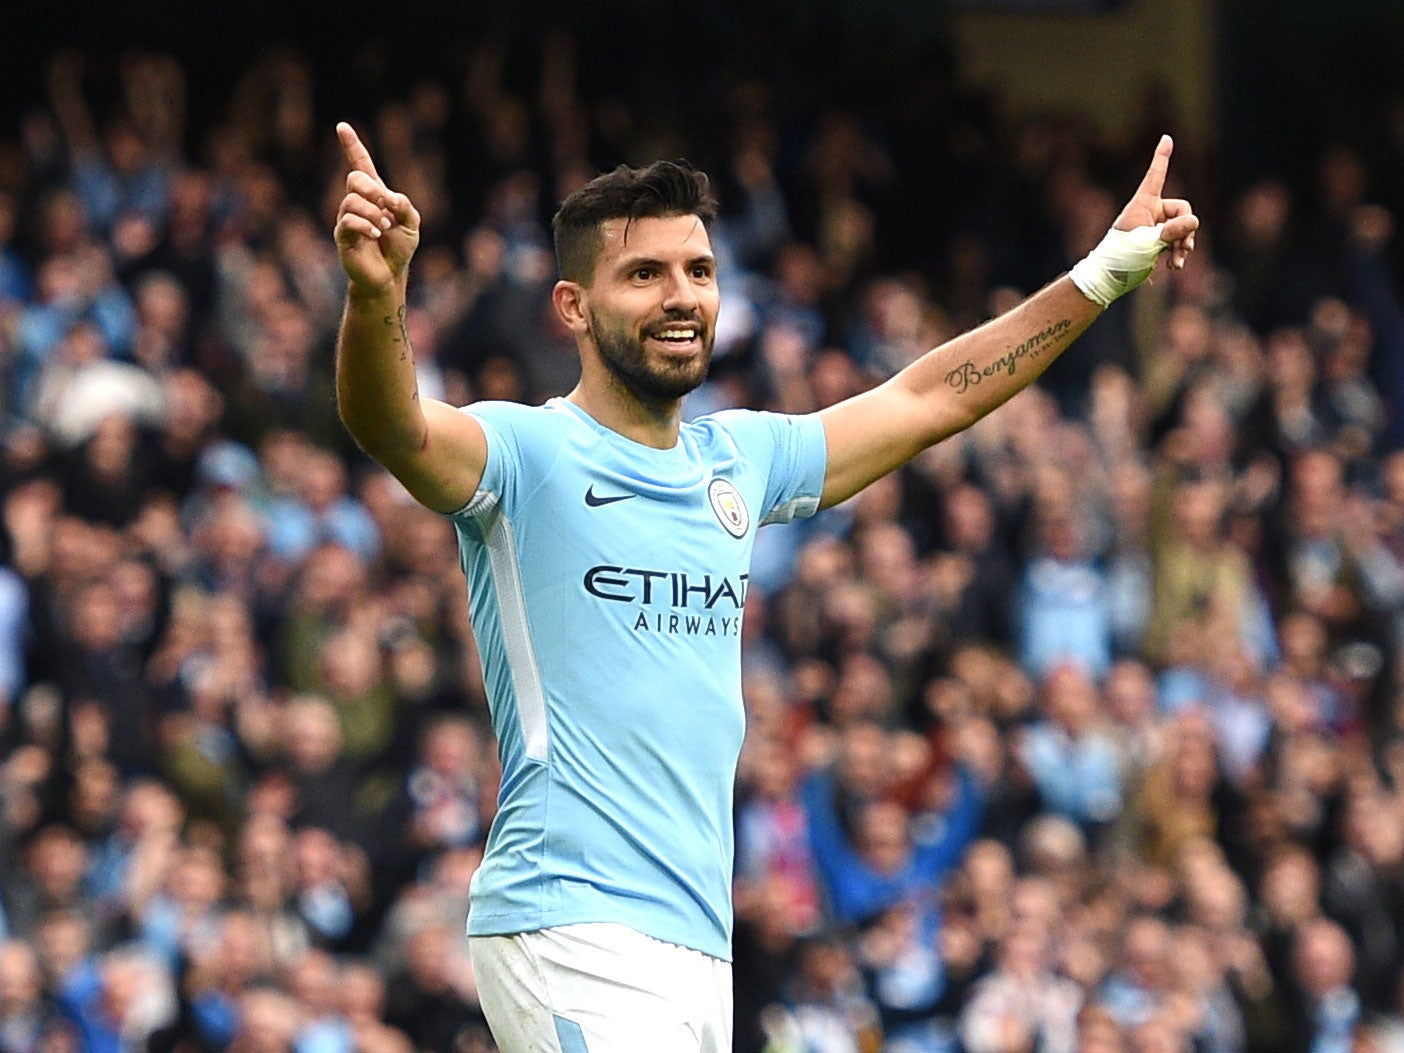 Manchester City now playing more with Sergio Aguero as striker